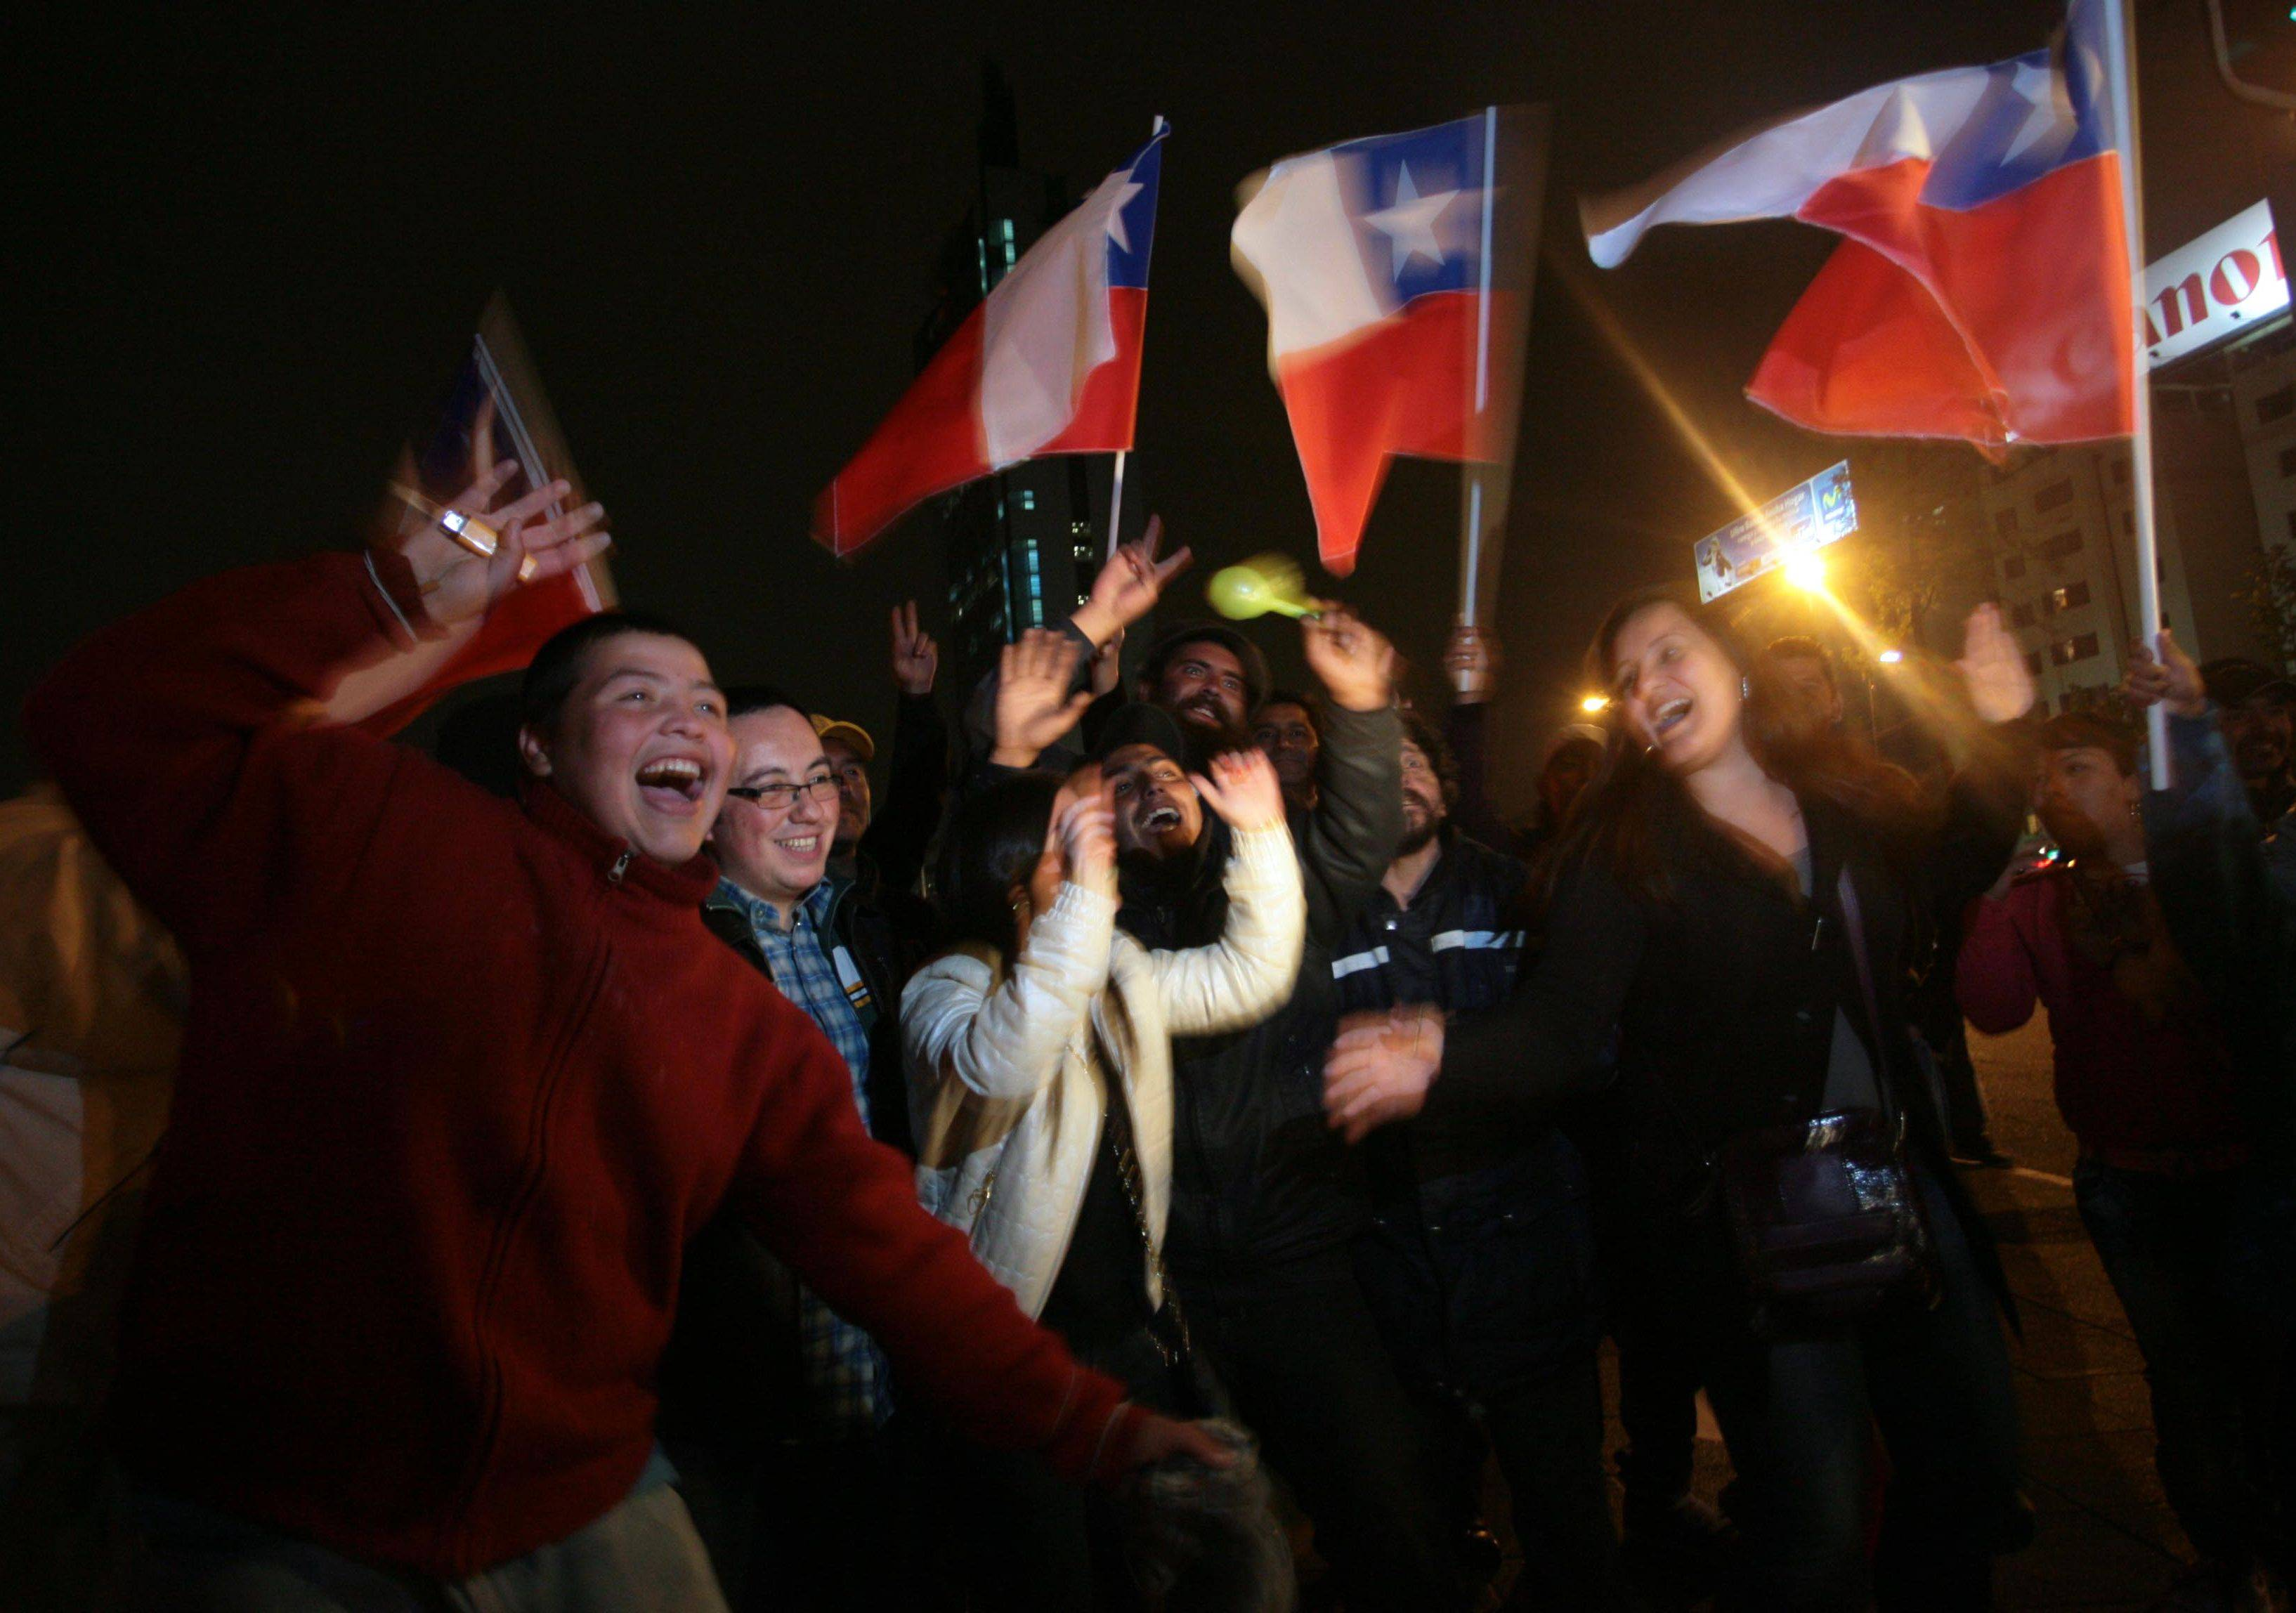 People celebrate in the streets of Santiago, the capital of Chile, after the first trapped miner Florencio Avalos was rescued from the San Jose gold and copper mine near Copiapo, early Wednesday, Oct. 13, 2010.